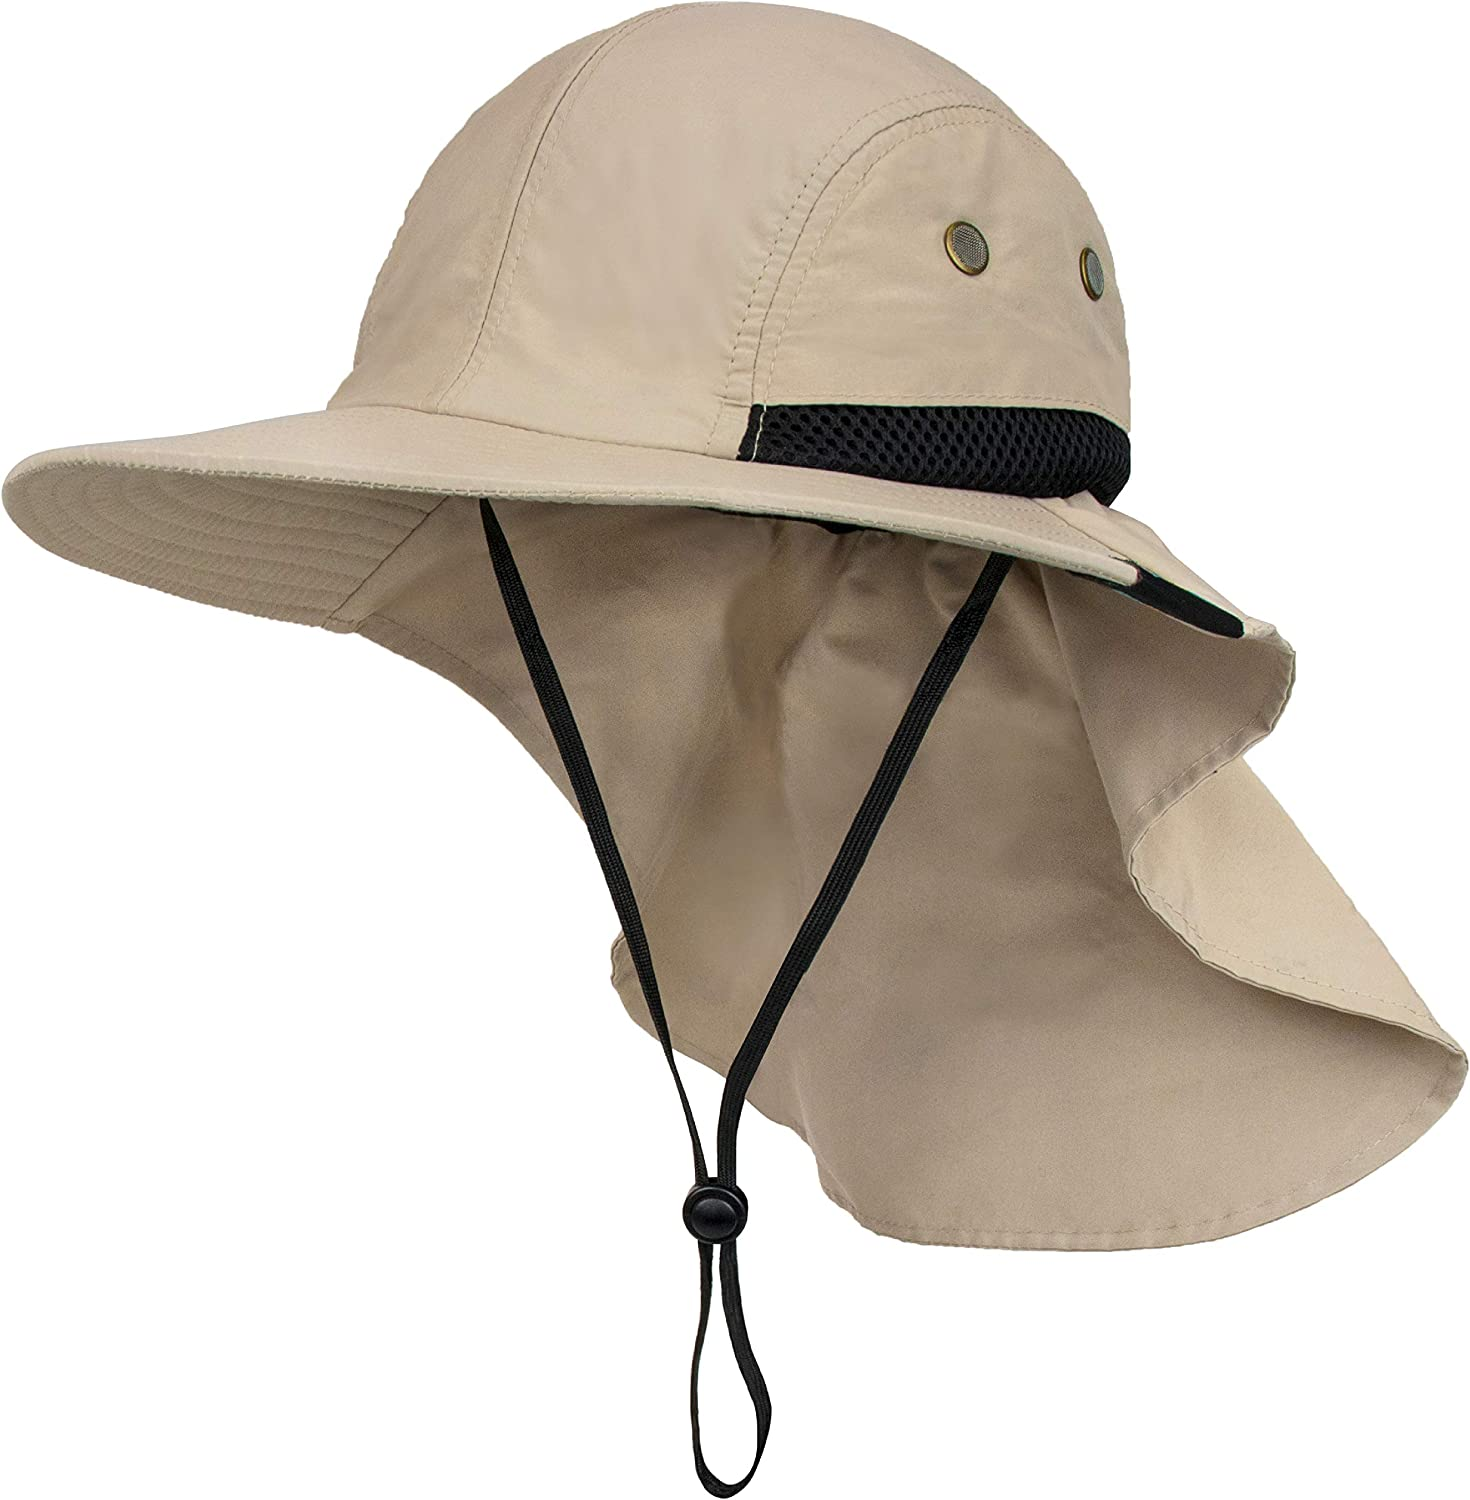 Fishing Hat with Neck Flap Popular Popular standard popular Sun Hiking for Wo Men Protection